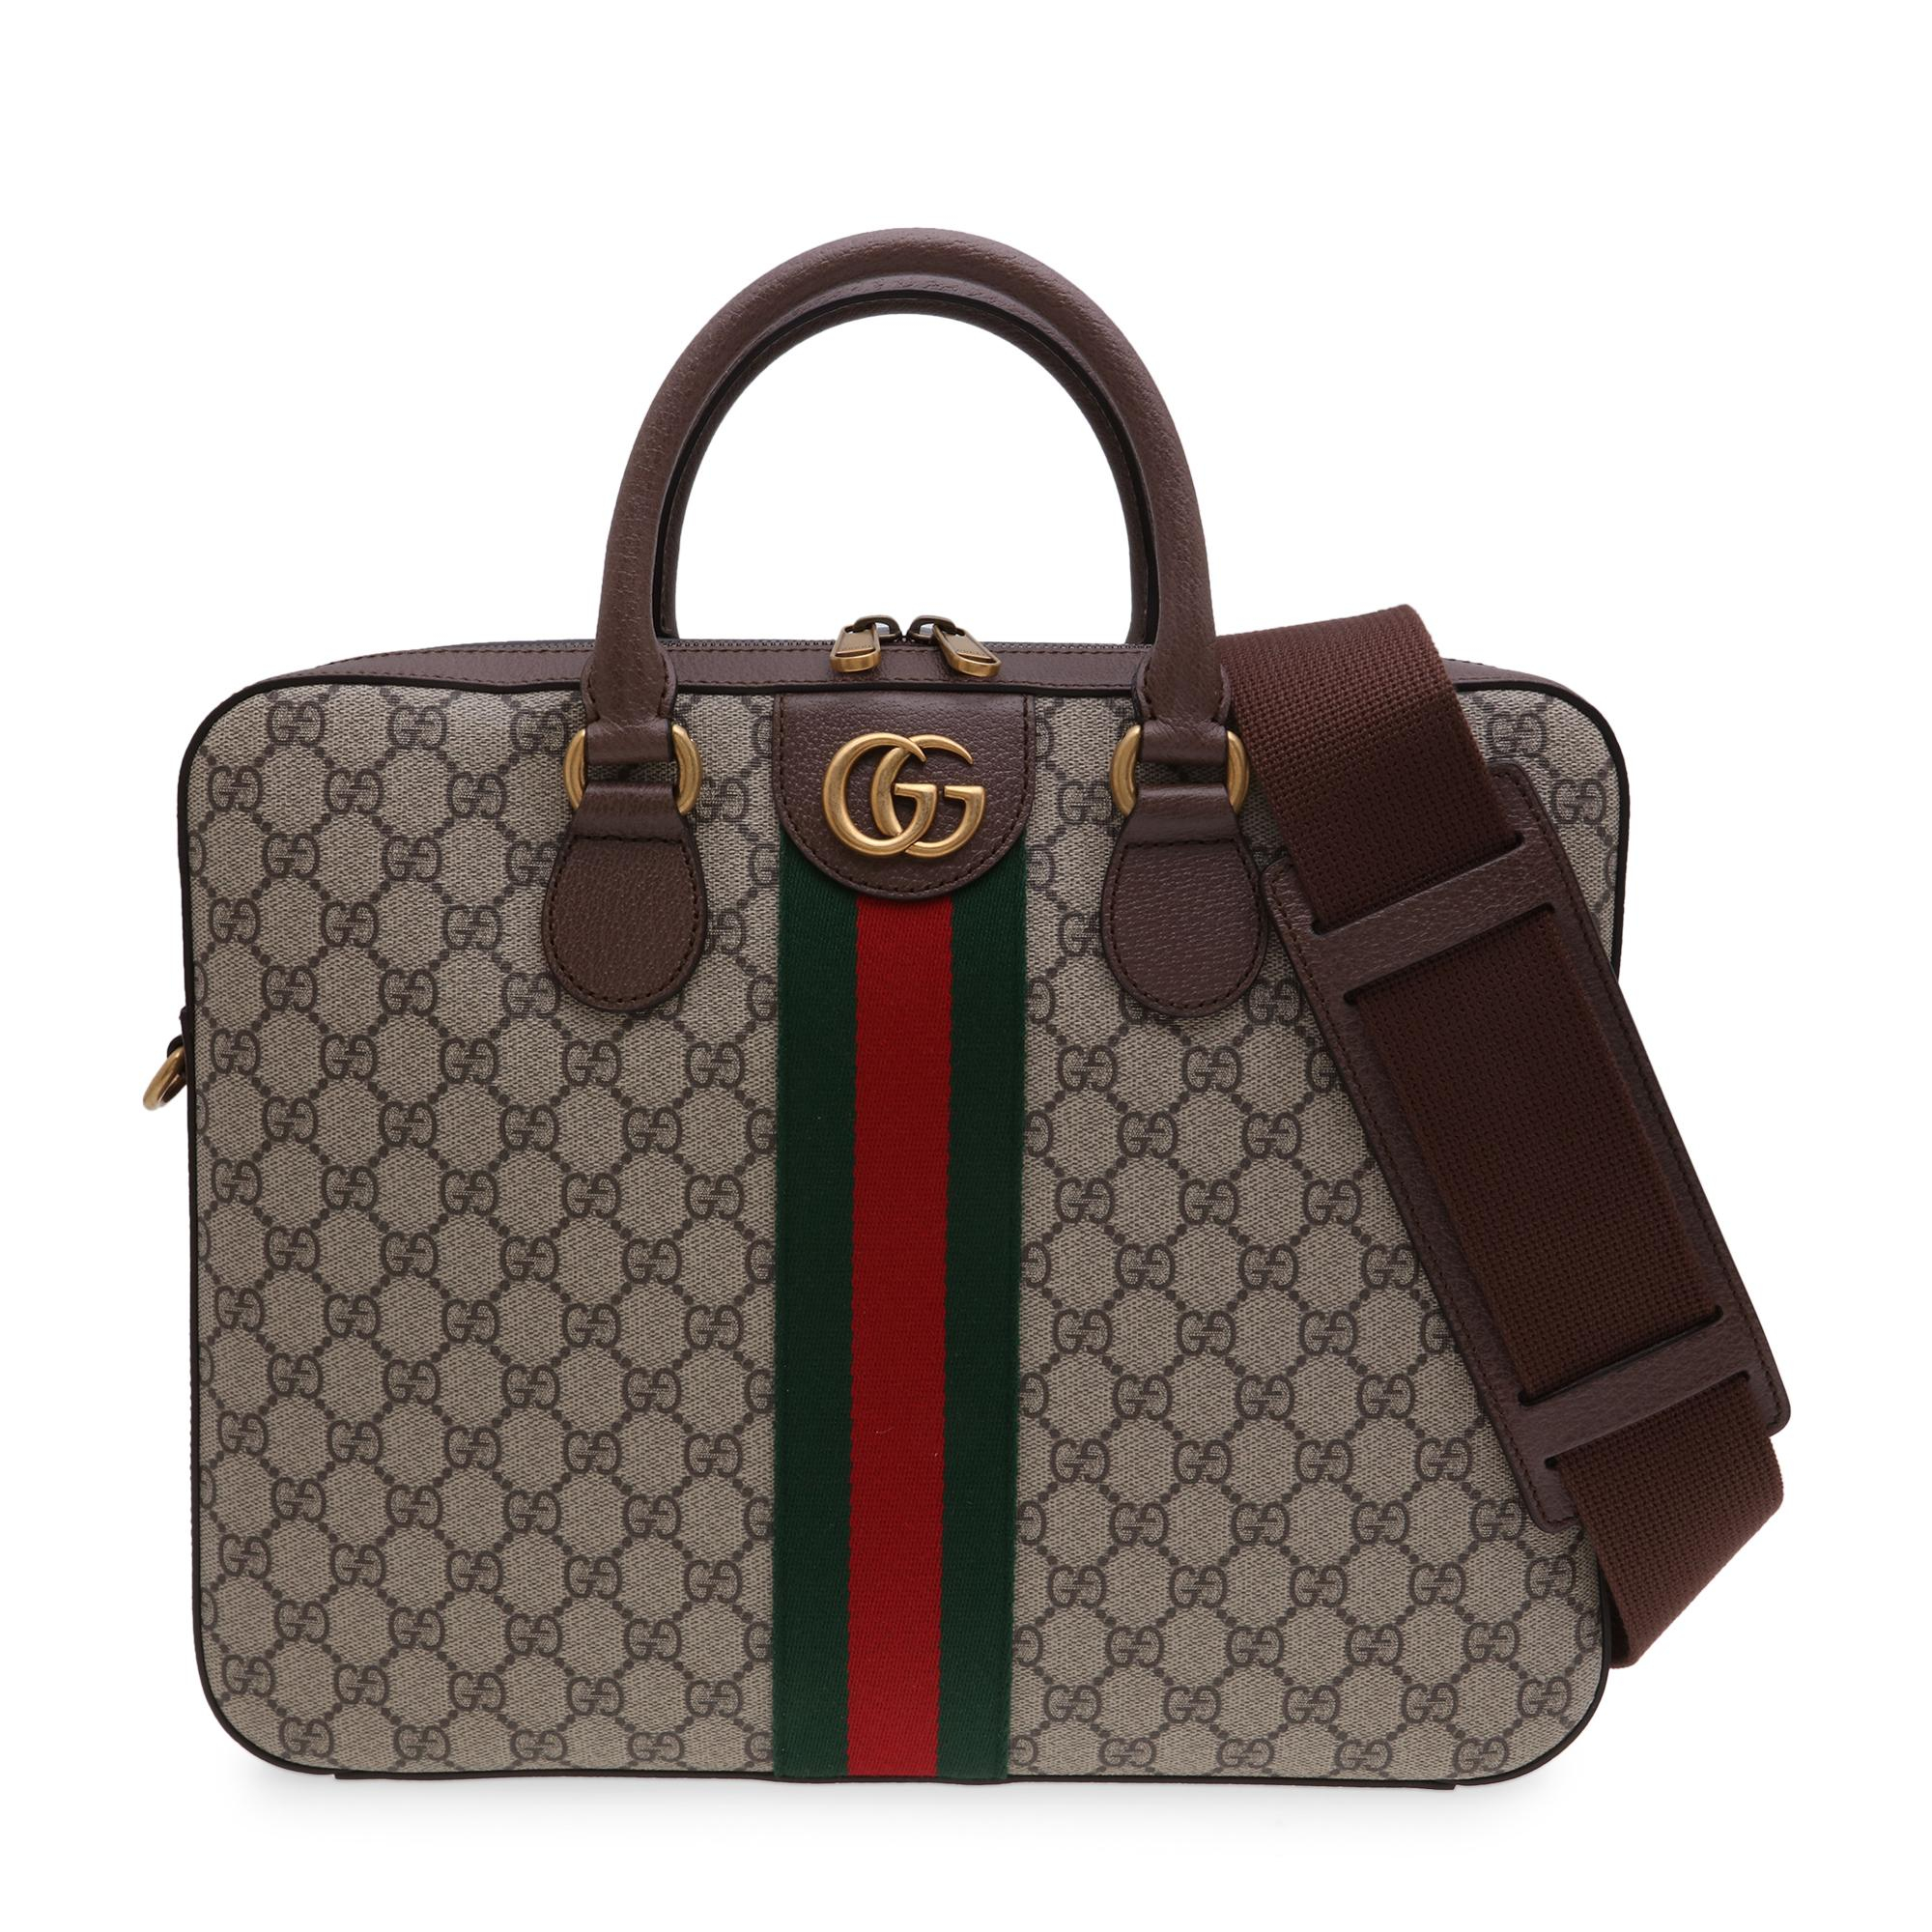 Ophidia GG briefcase